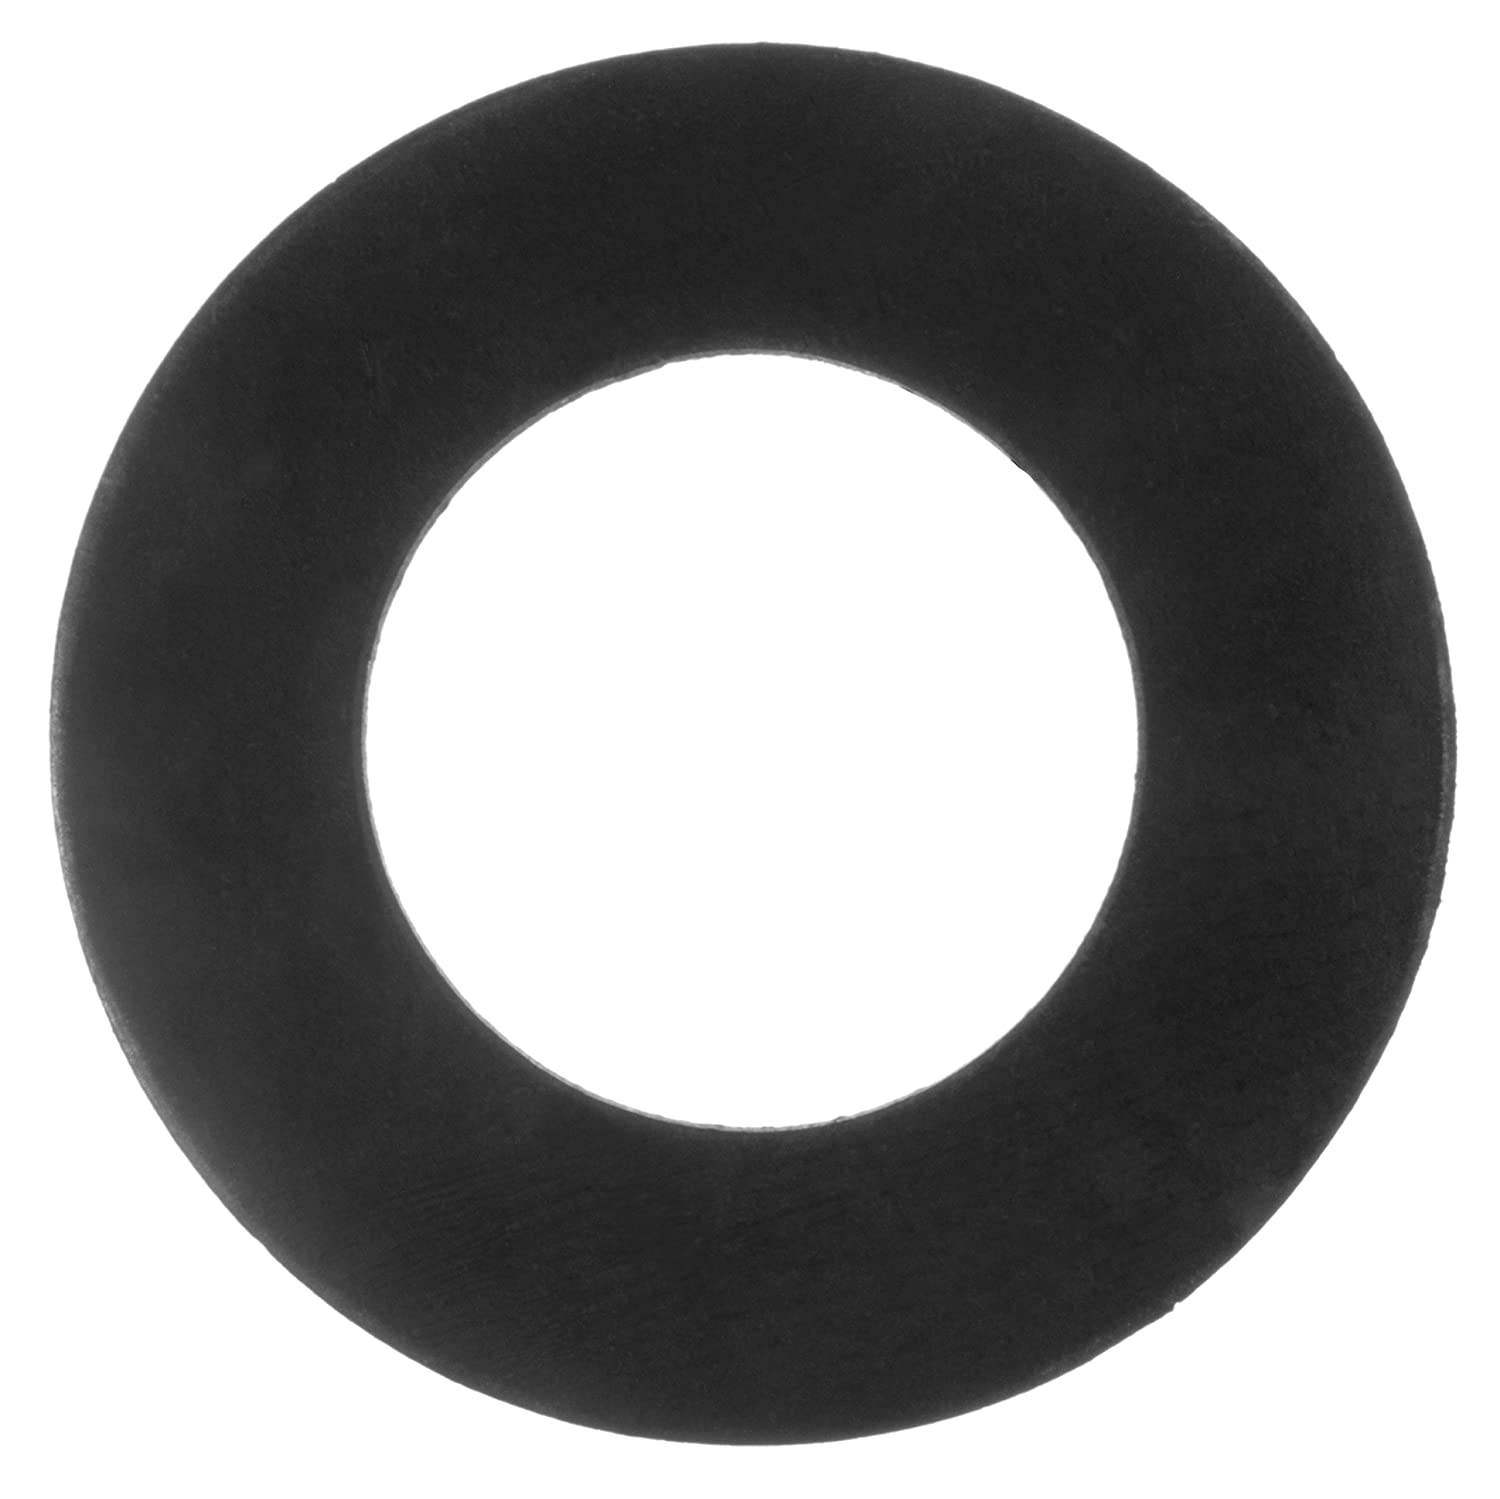 1//16 Thick Class 300 USA Sealing Ring Viton Rubber Flange Gasket for 2 Pipe